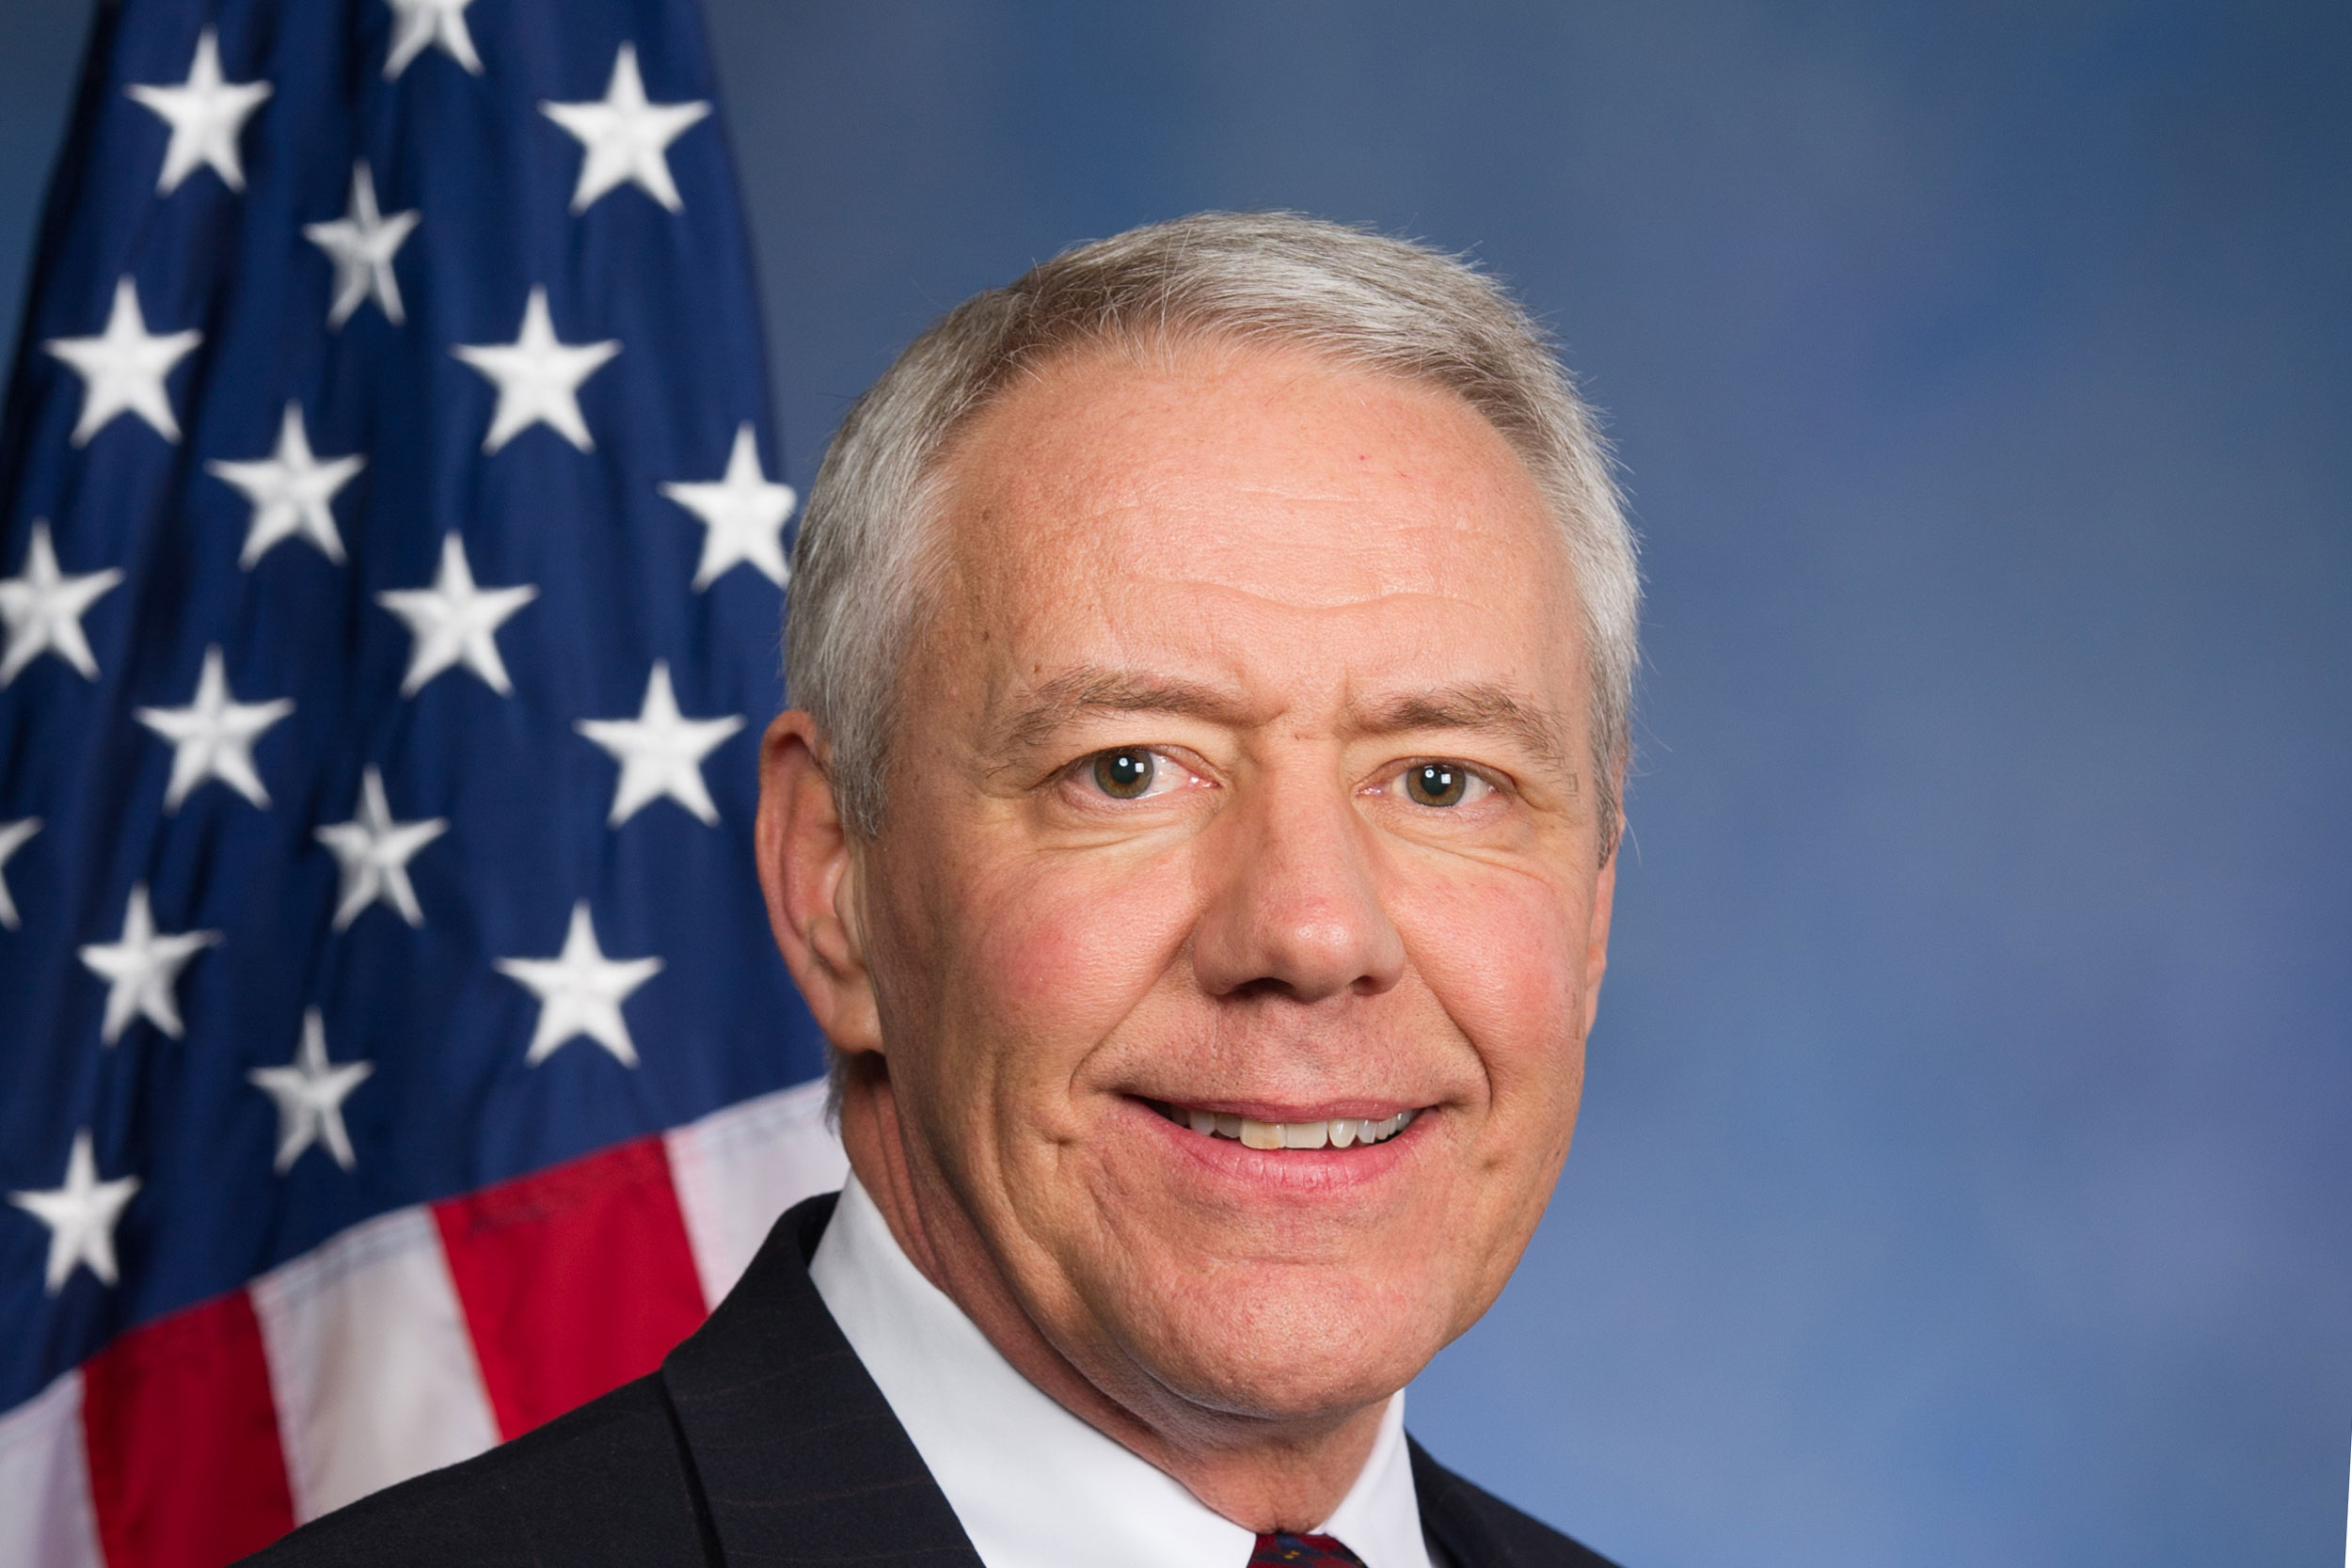 Colorado Republican Representative Ken Buck serves the state's 4th Congressional District.